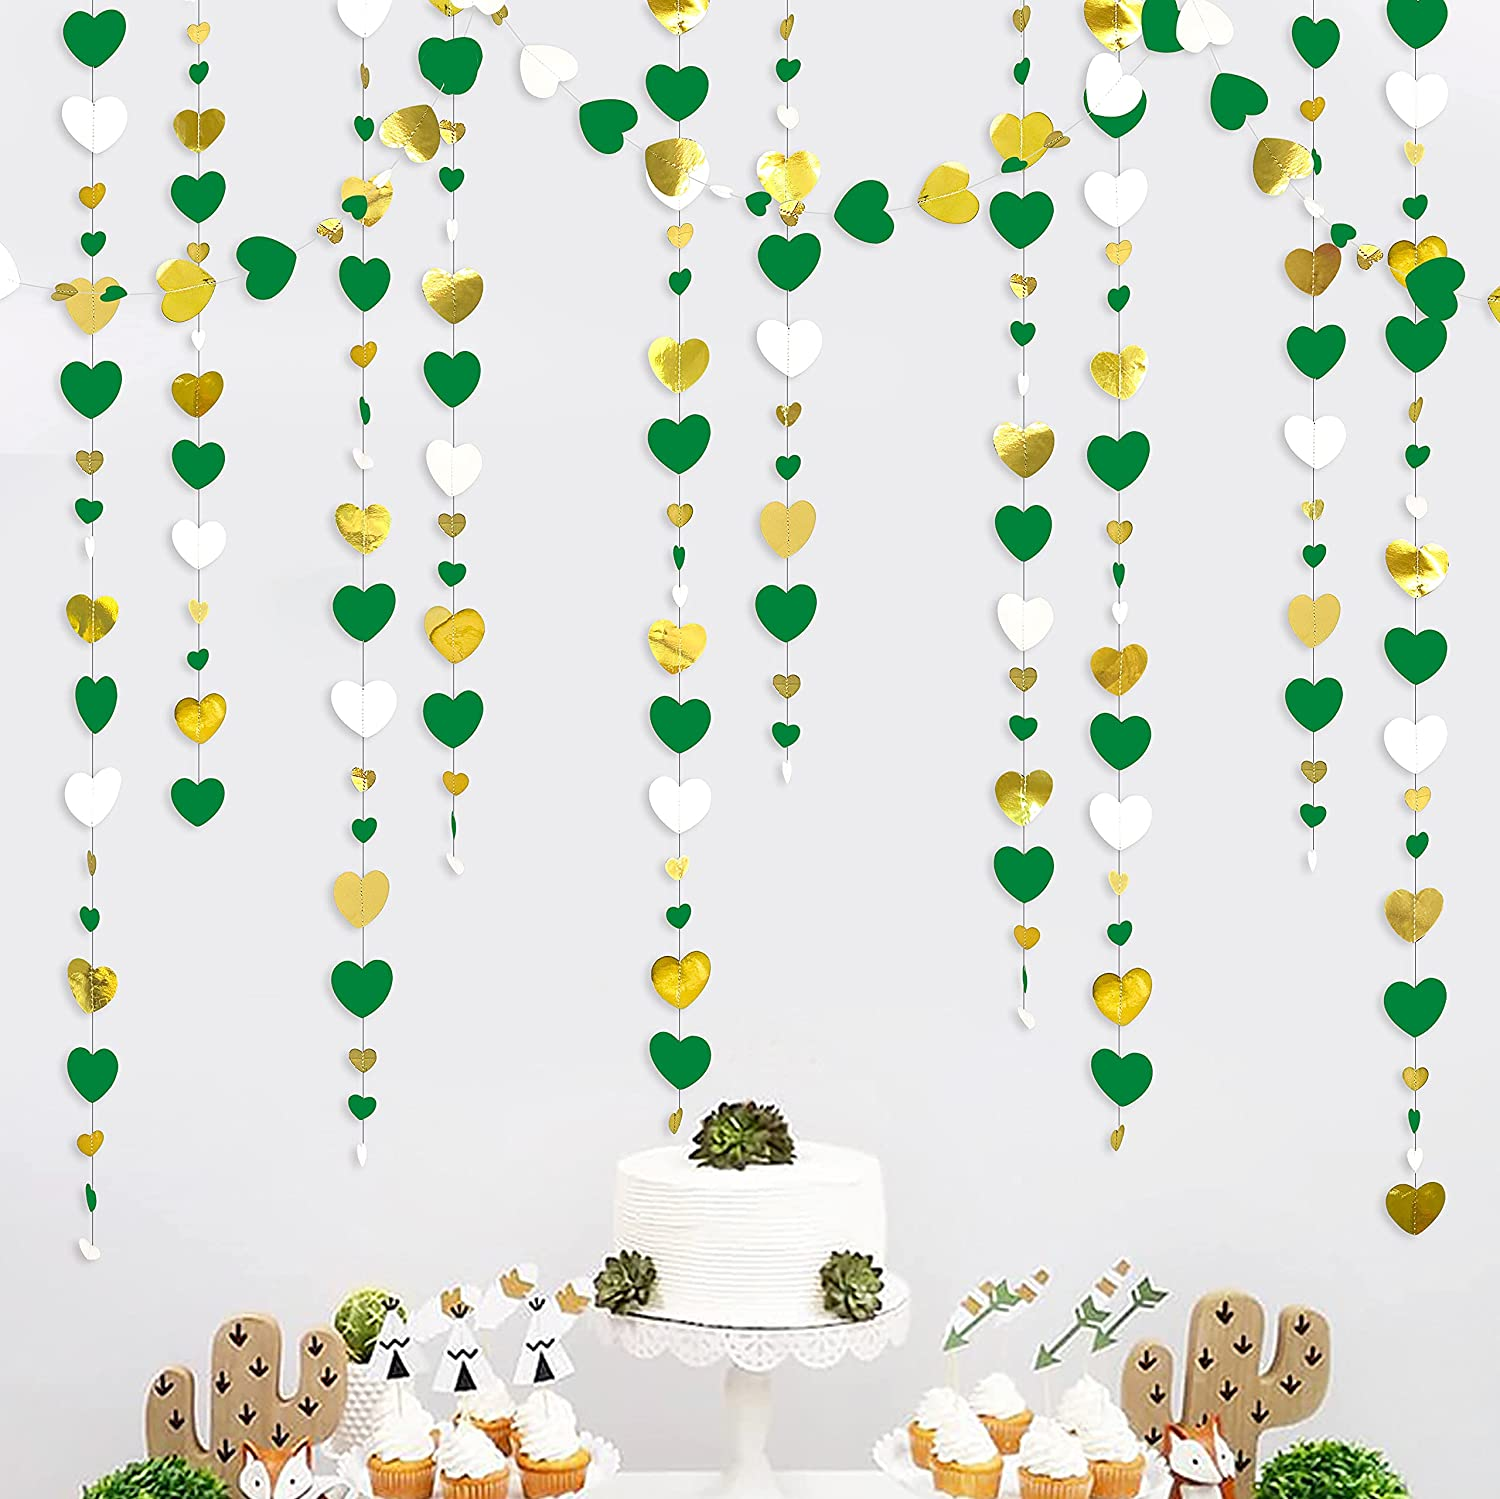 52 Ft Green White and Gold Love Heart Garland Hanging Paper Streamer Banner for Anniversary Bachelorette Engagement Wedding Bridal Shower Birthday Mother's Day Valentines Party Decorations Supplies